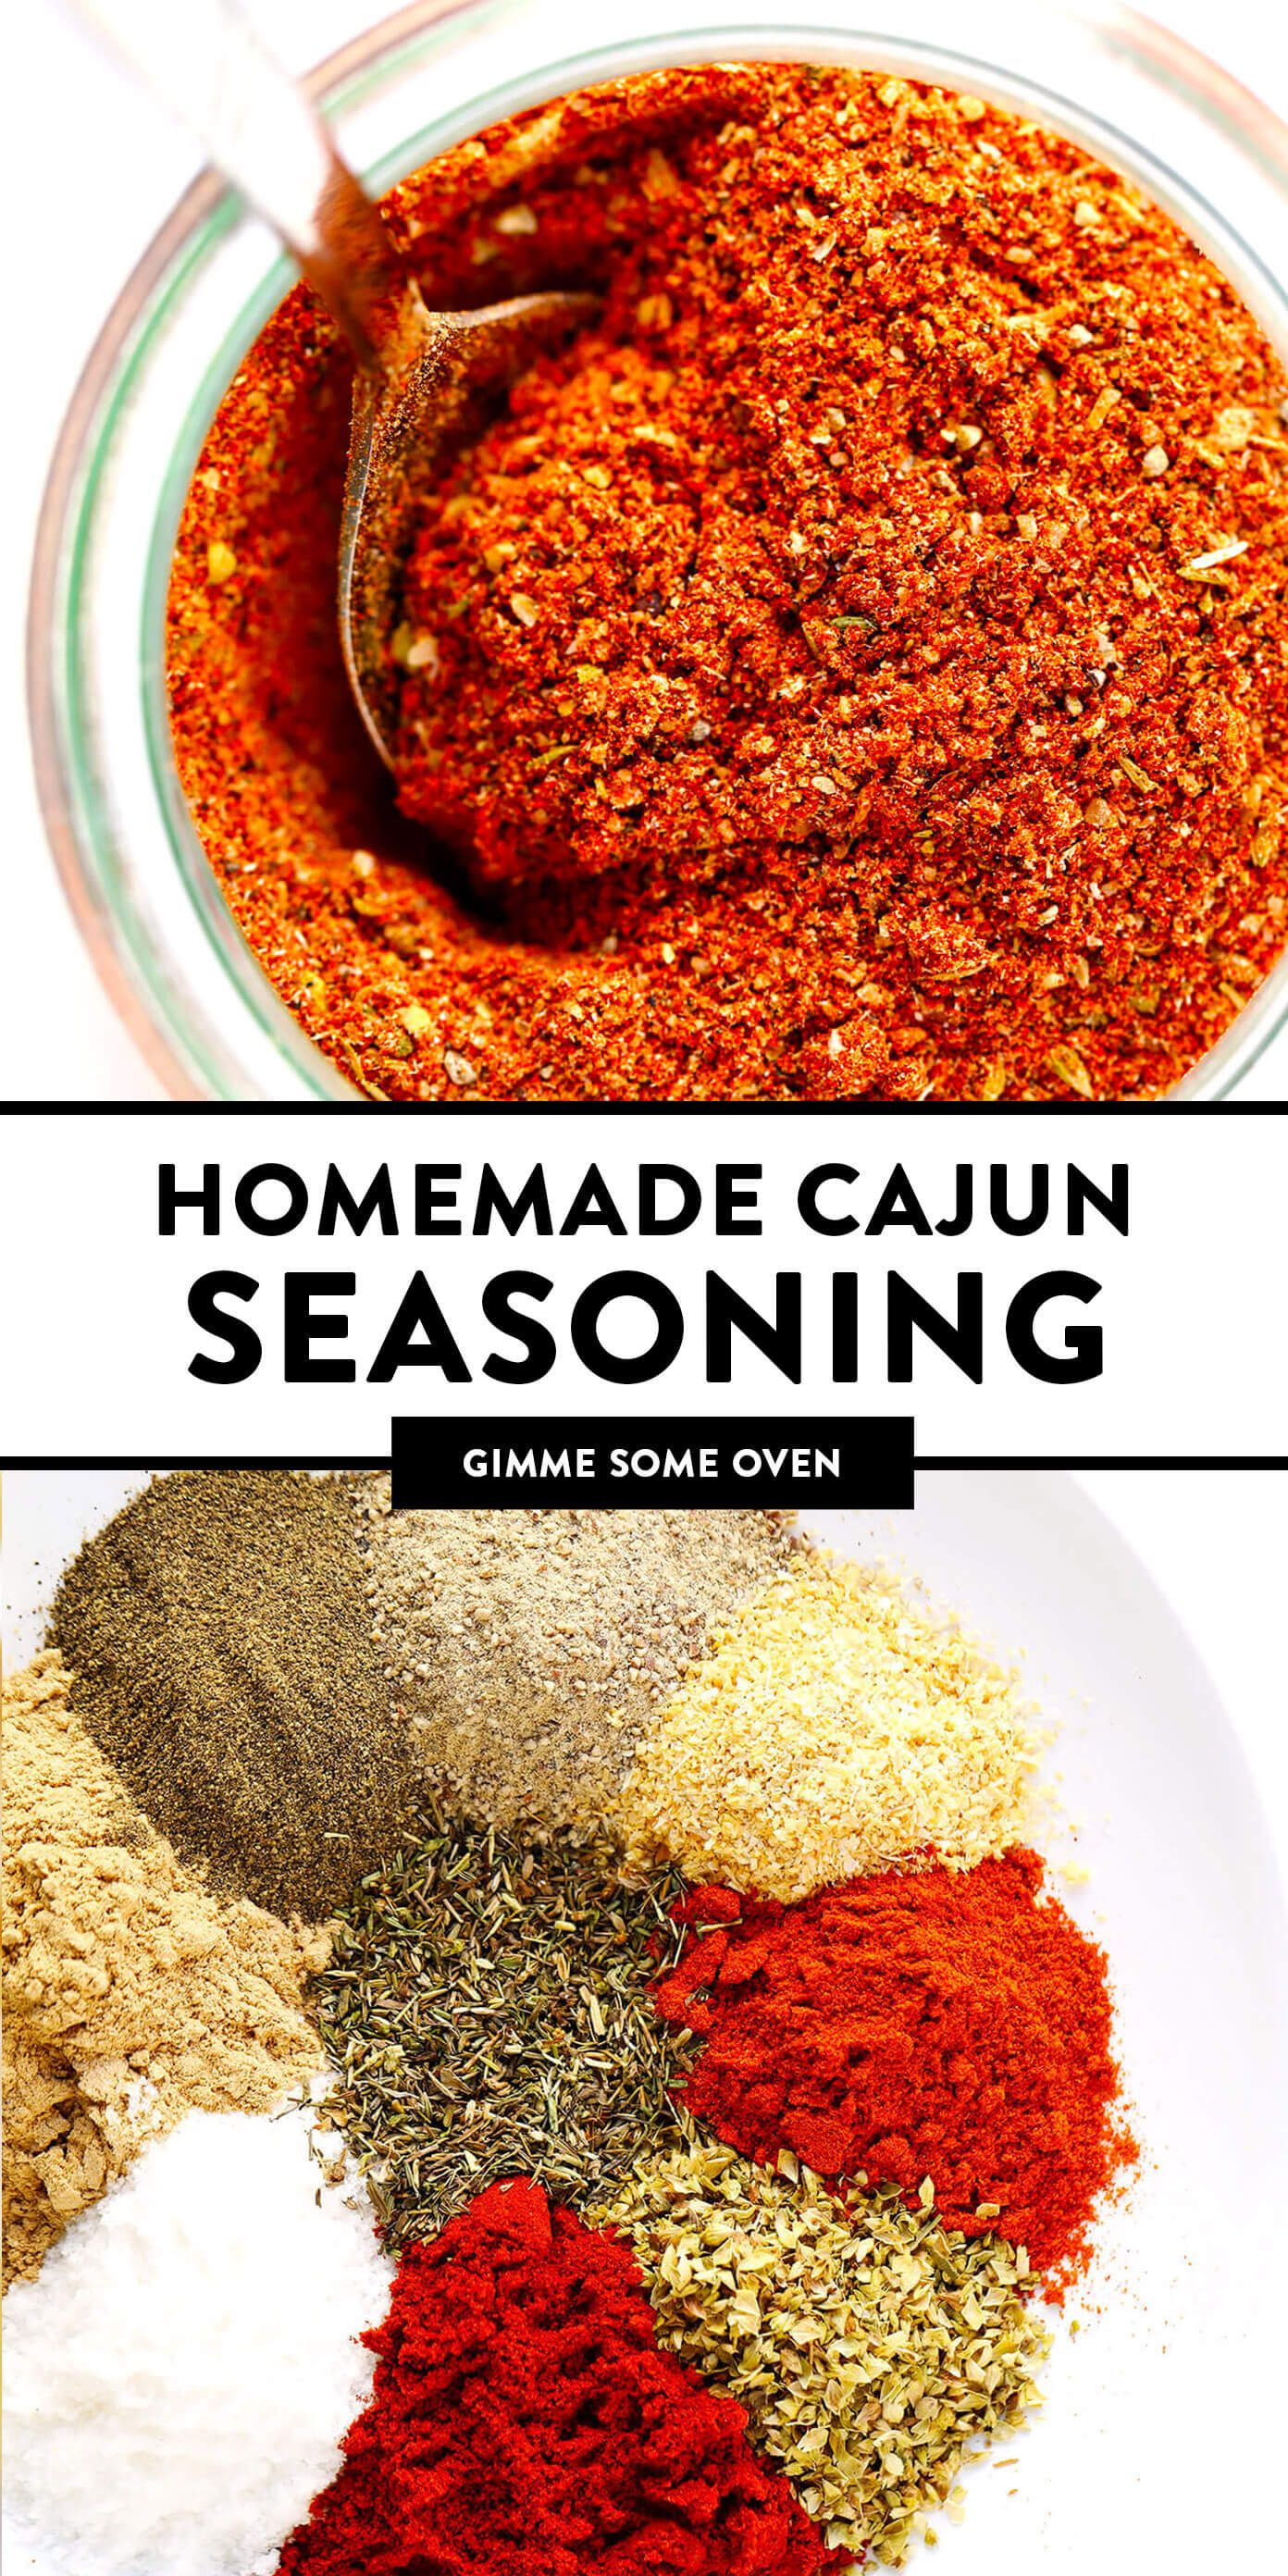 The best homemade Cajun Seasoning recipe! It only takes about 5 minutes to make, and tastes great on everything from chicken to shrimp, veggies to tofu, every kind of potato and more. Use it in a soup, stir-fry, pasta, kabob, dip, crackers, sheet pan dinner - you name it! It's the bold, zesty, spicy blend that kicks any dish up a delicious notch. | Gimme Some Oven #cajun #seasoning #spice #blend #spicy #glutenfree #homemade